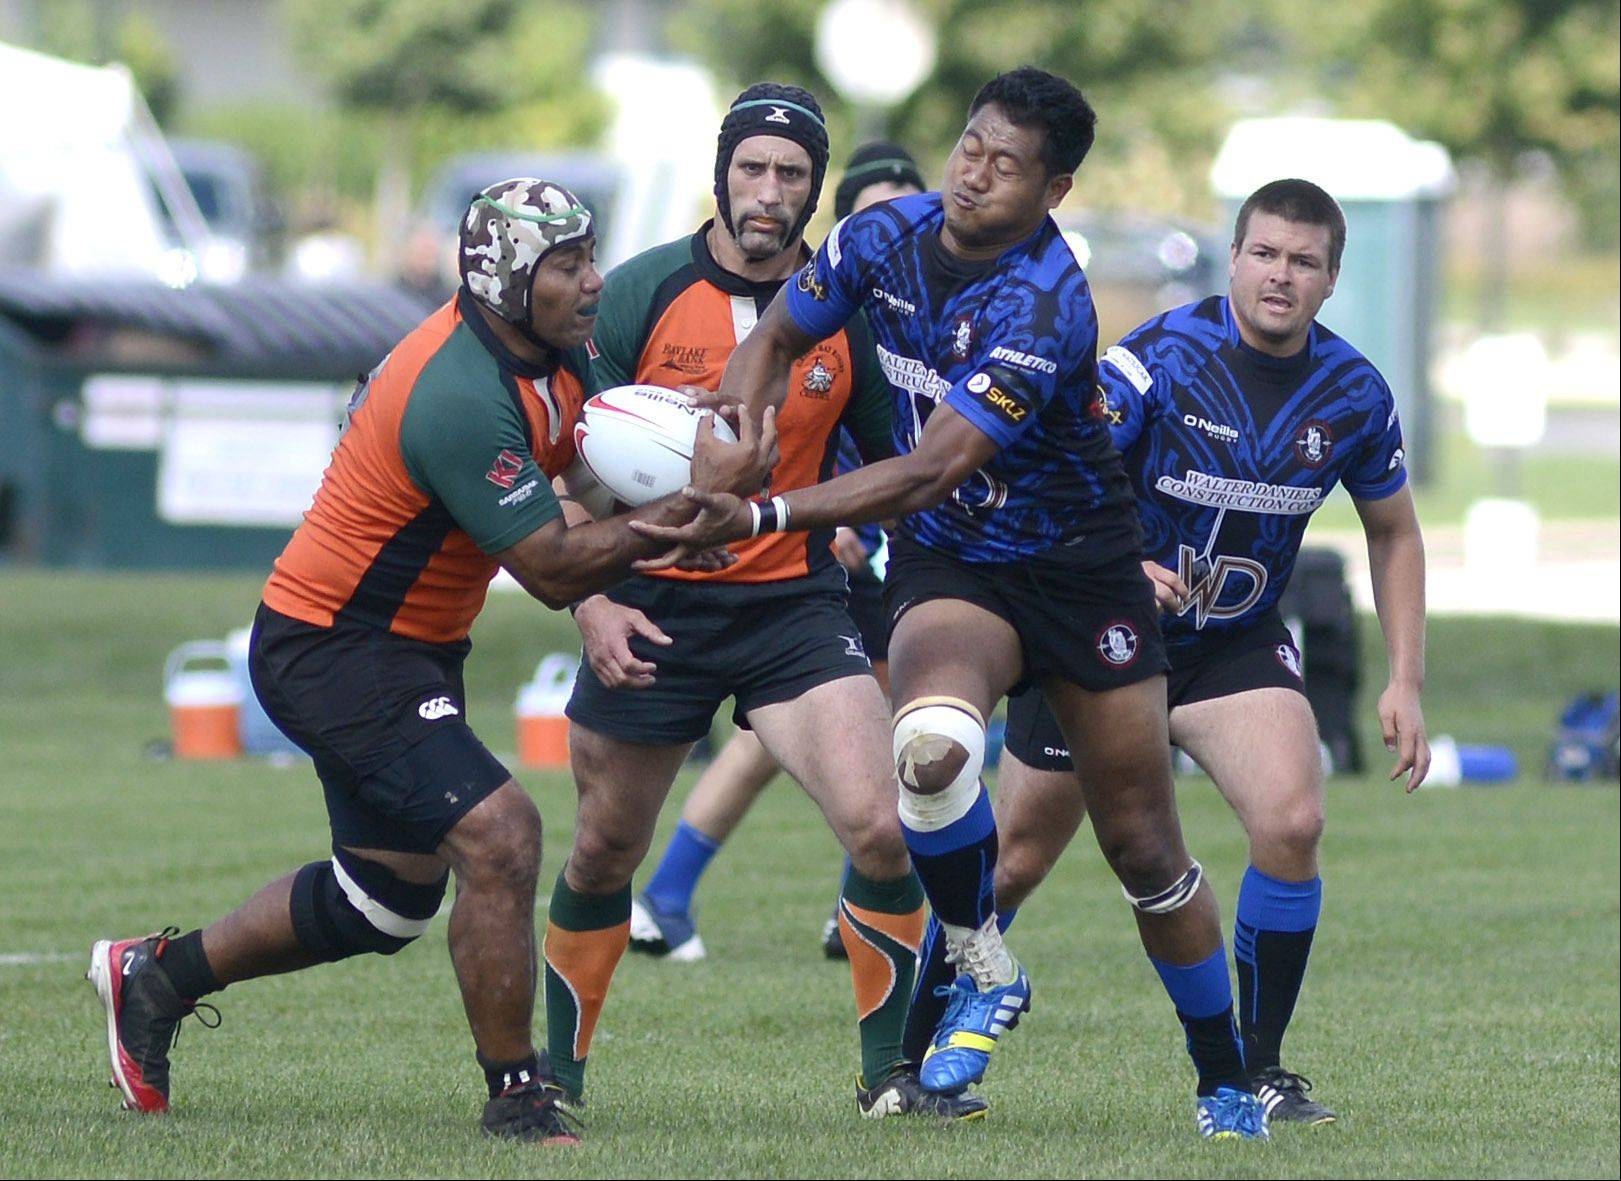 Lafitaga Lealaua, known as Lafi, center right, tries to wrestle the ball away from the Green Bay Celtics during a match at James O. Breen Community Park in St. Charles. Lealaua, who lives in Elgin, has been a member of the Fox Valley Maoris Rugby Football Club for five years, joining soon after coming to the U.S. He's been playing the sport for 25 years, starting when he was just 5.